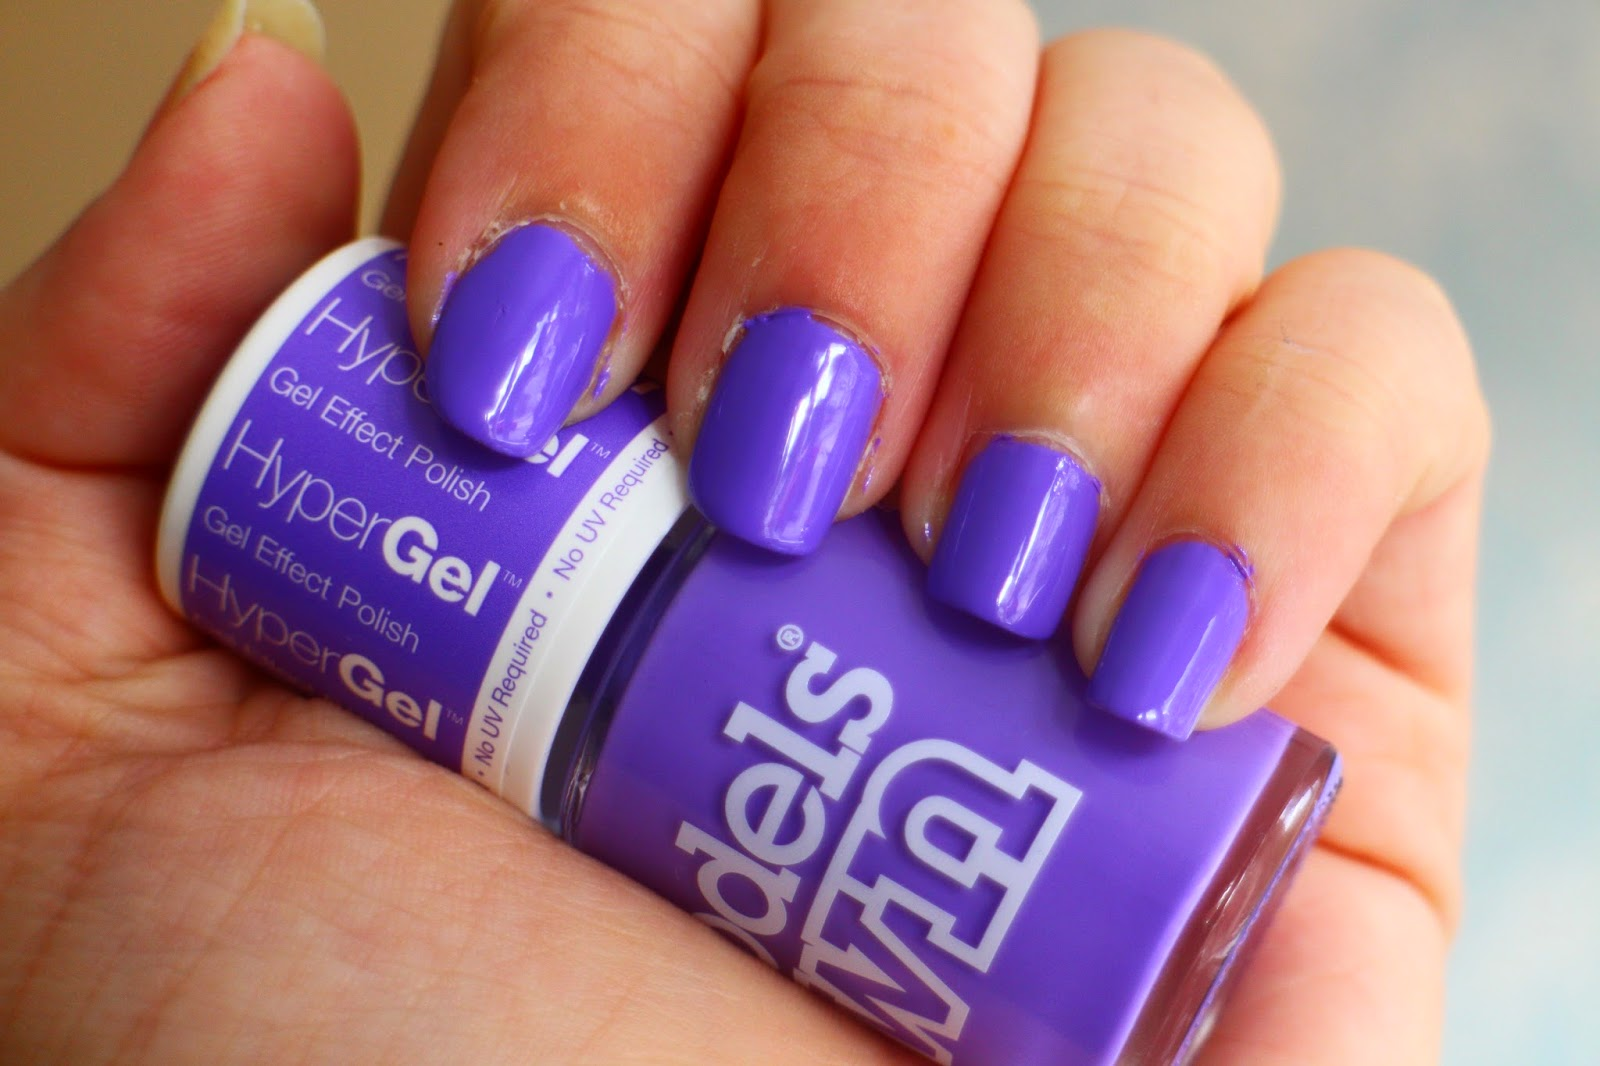 NOTD - Models Own Hypergel Purple Glare